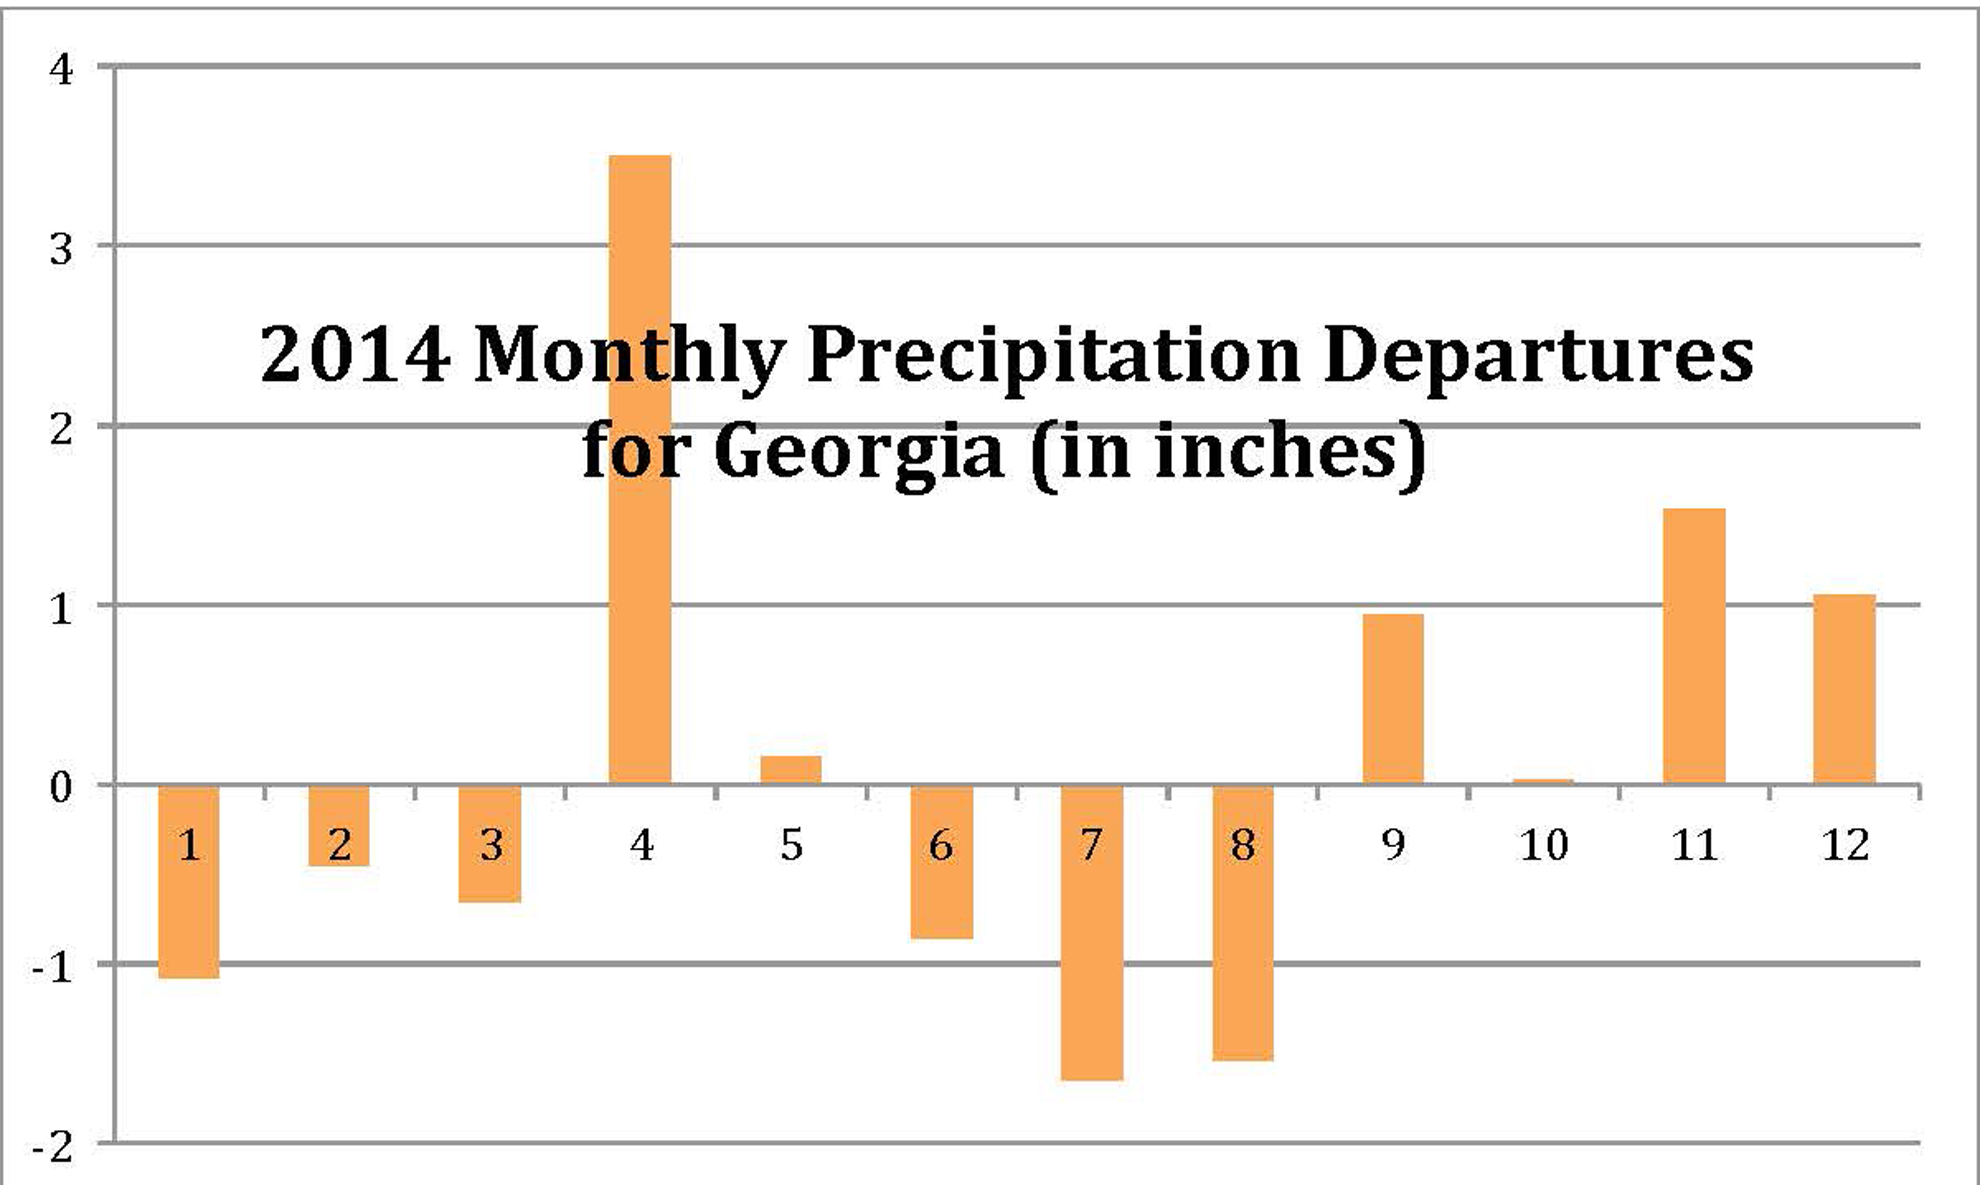 Monthly precipitation departures from the 1901-2000 base period (Data source: National Climatic Data Center)